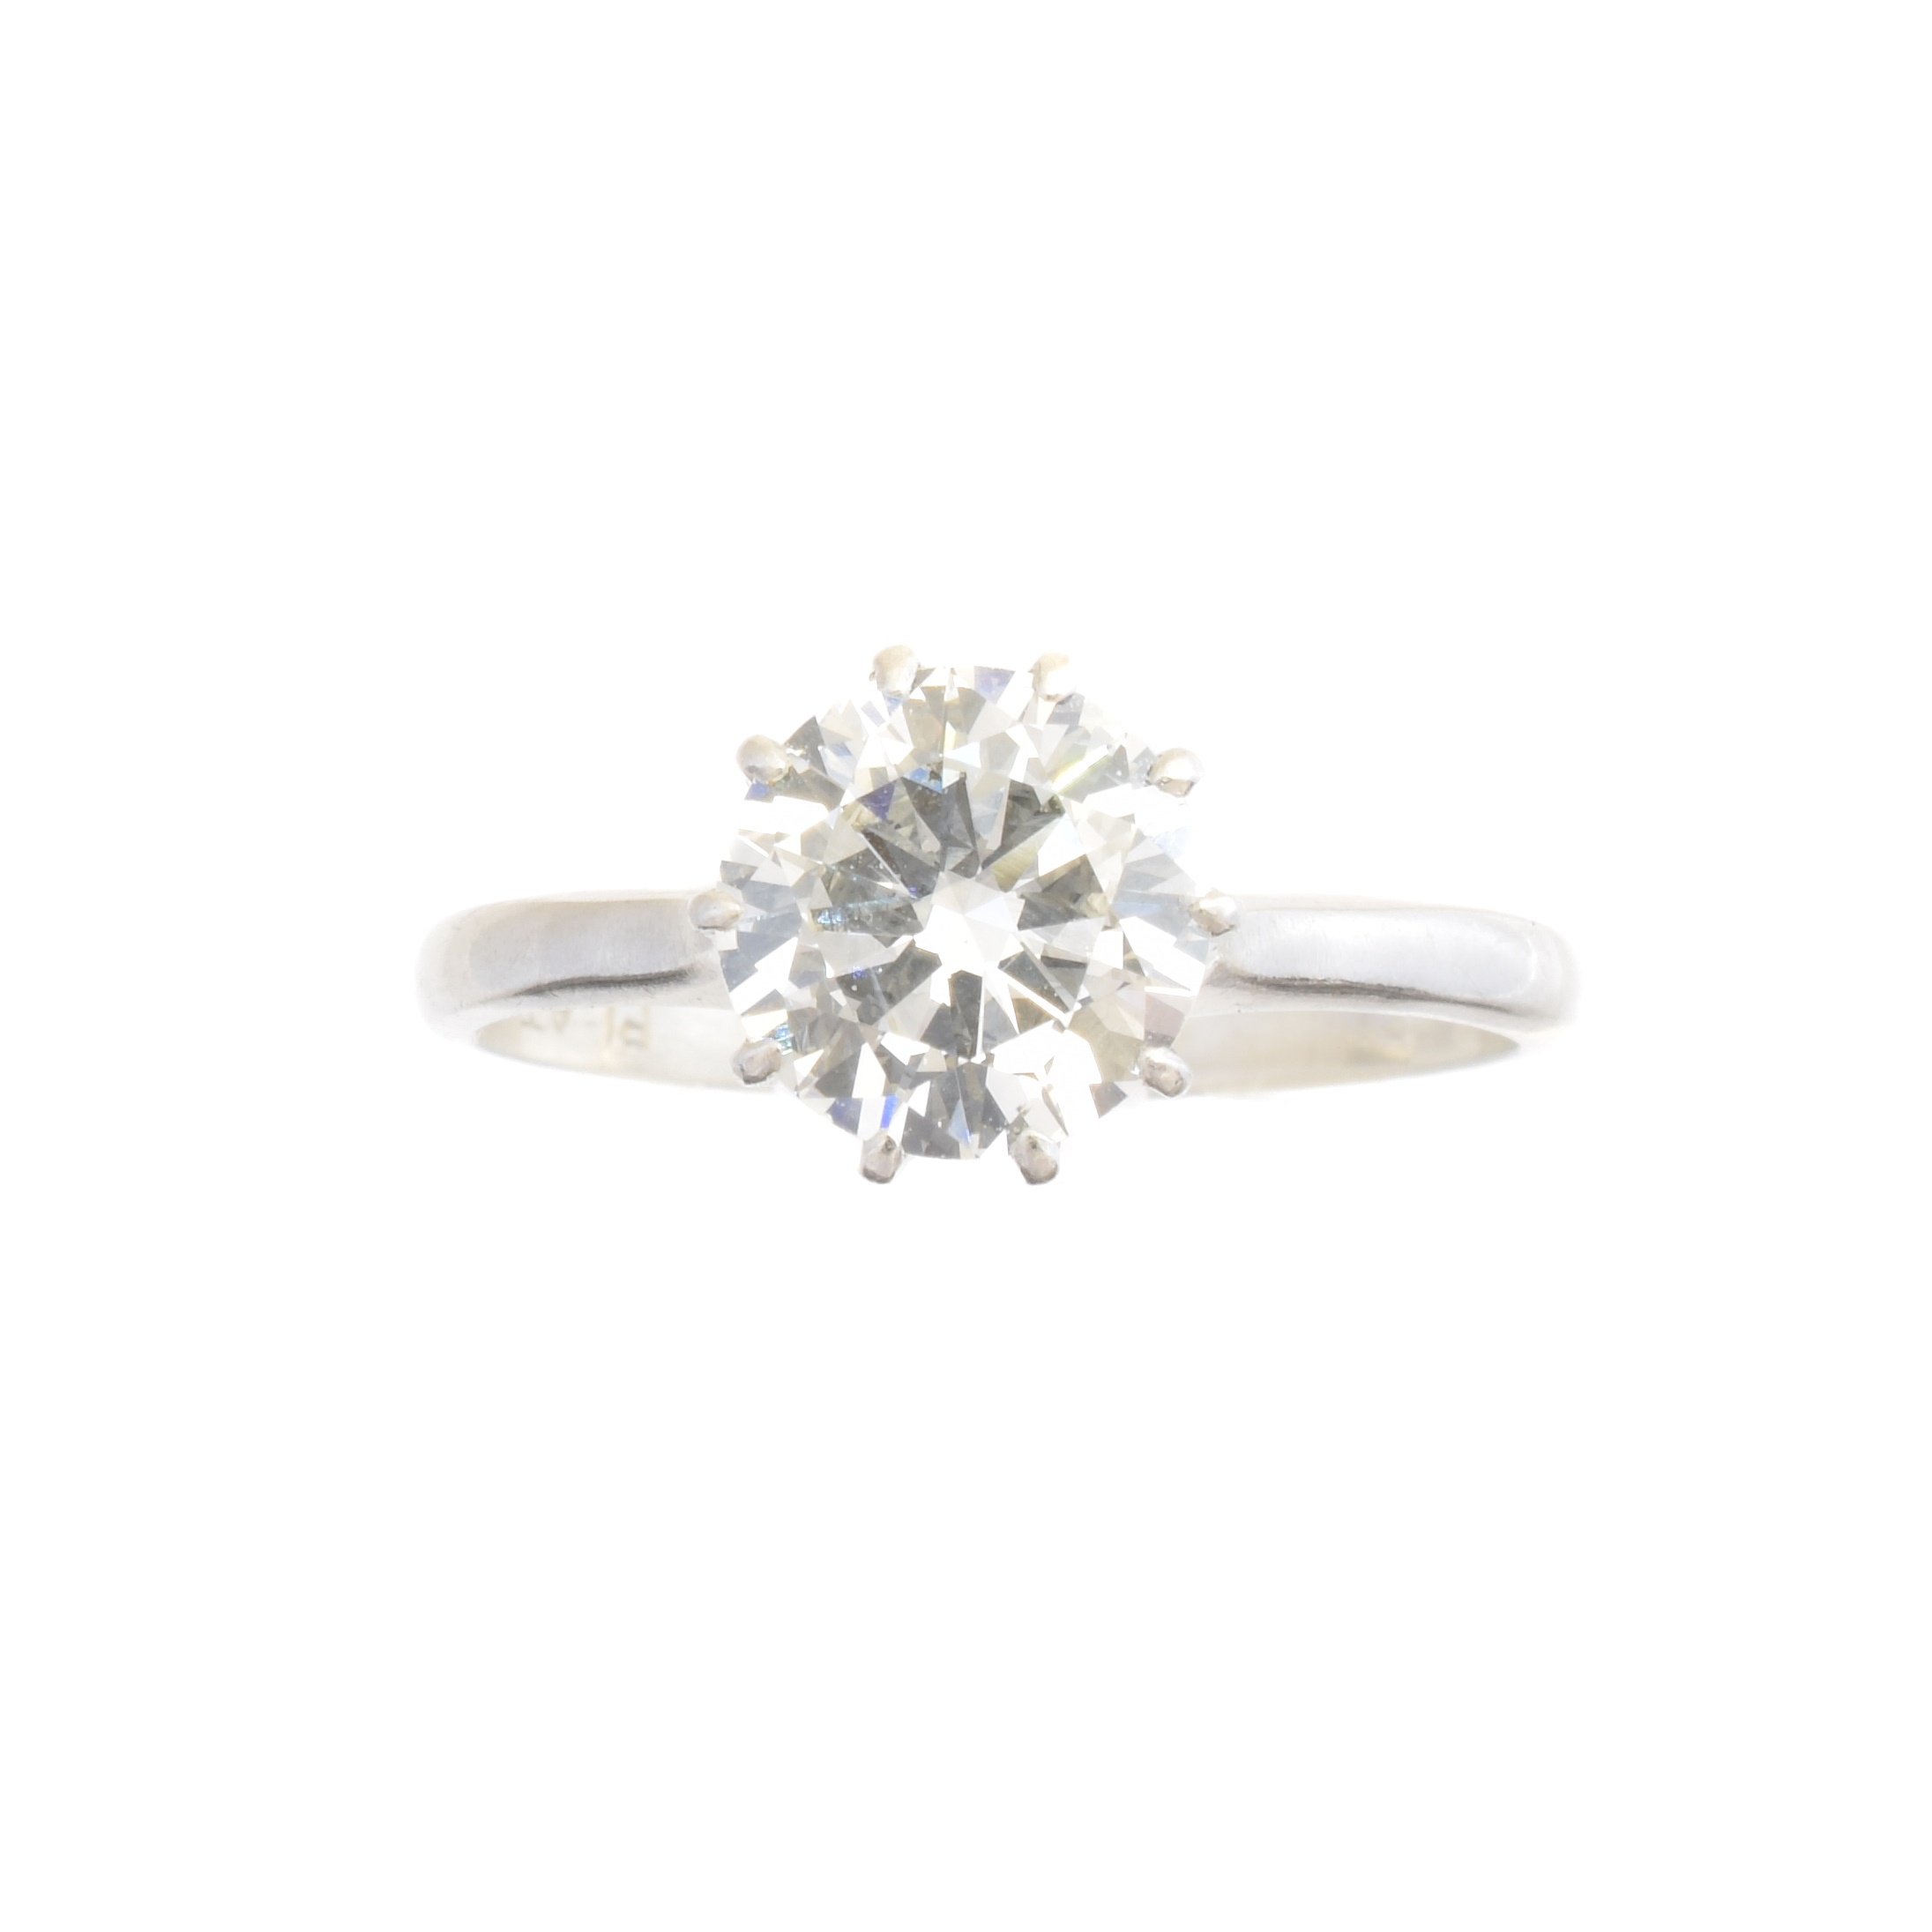 A diamond single stone ring, the brilliant cut diamond weighing approx. 1.25cts within a ten claw setting, estimated colour I-J, estimated clarity SI, stamped PLAT, ring size L, gross weight 3.3g.